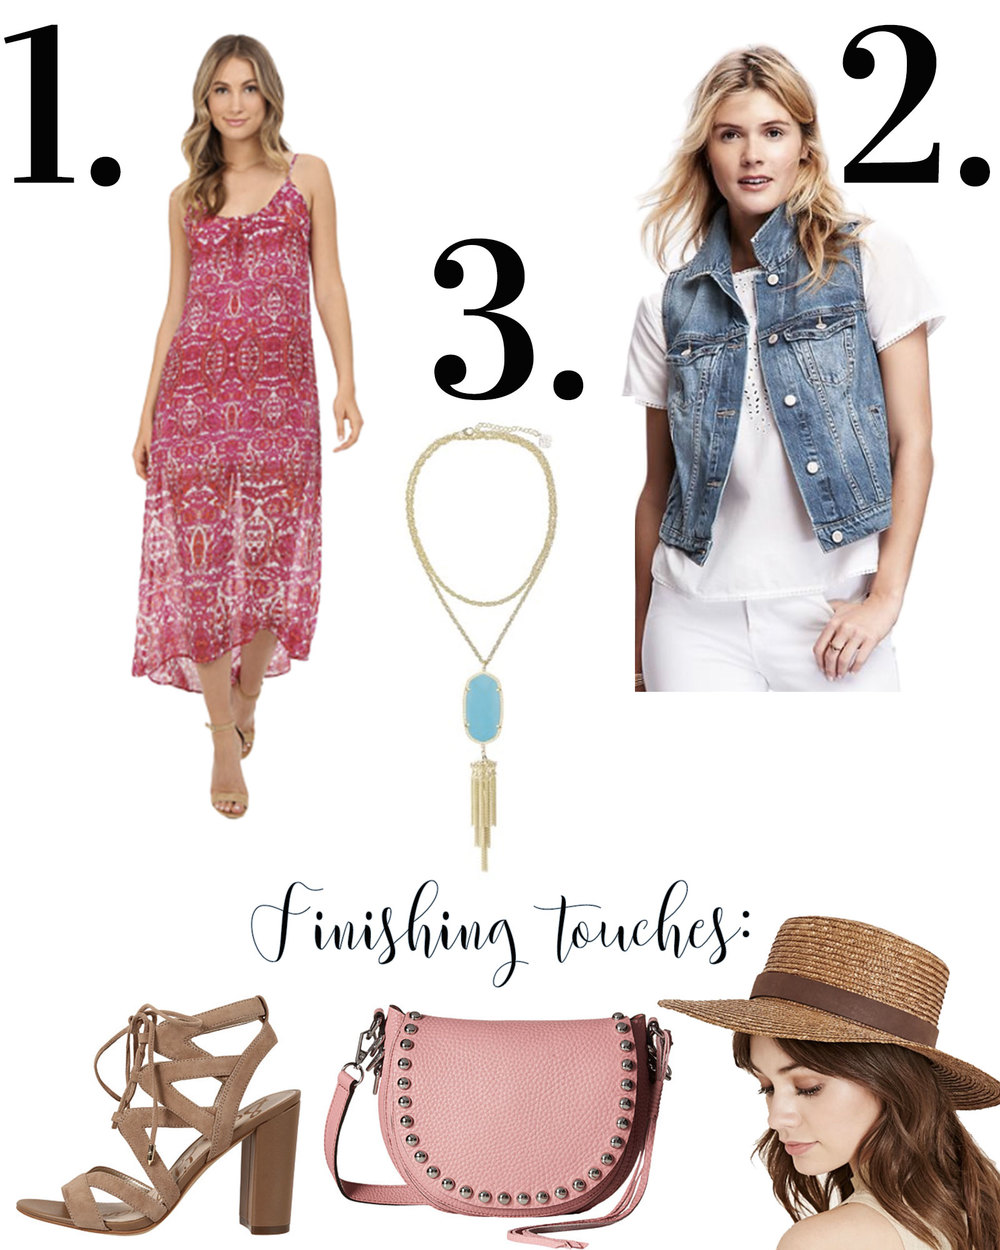 Third piece rule for cute summer outfits, midi dress with denim vest and Sam Edelman Yardley sandals, Kendra Scott Rayne Necklace in teal, and a light pink Rebecca Minkoff saddle bag.